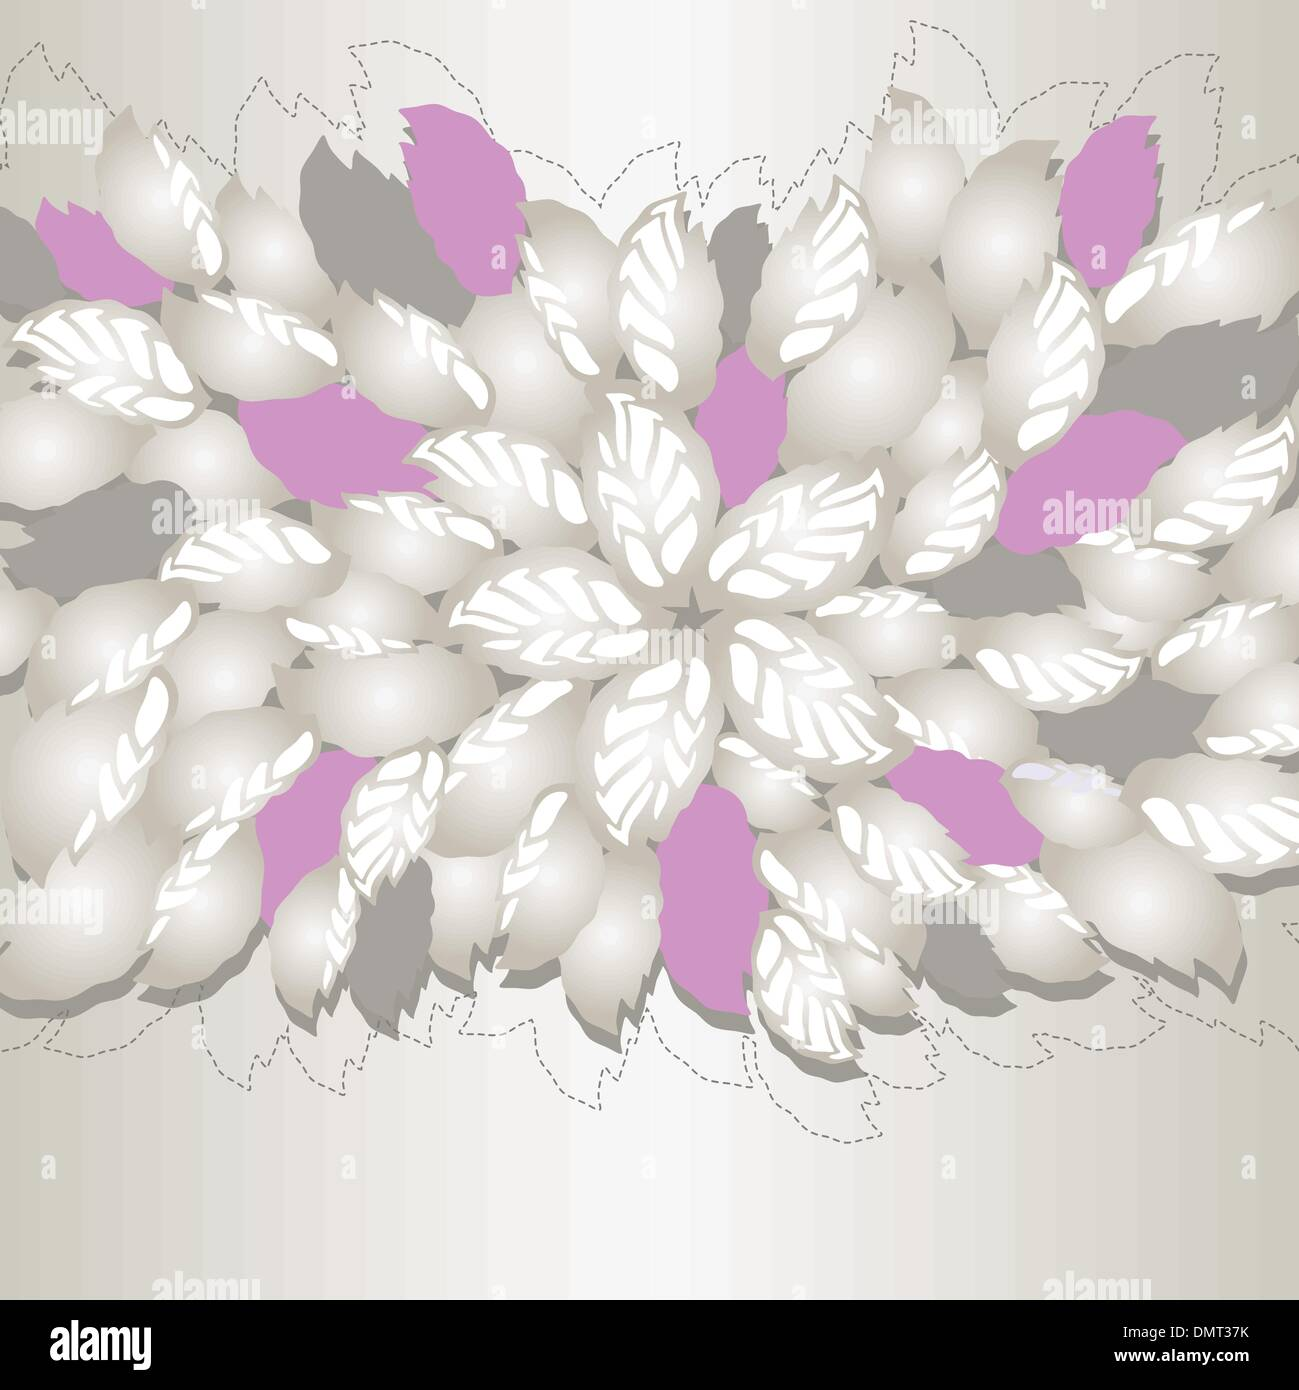 Gorgeous Silver And Pink Flowers And Leaves Book Cover Stock Vector